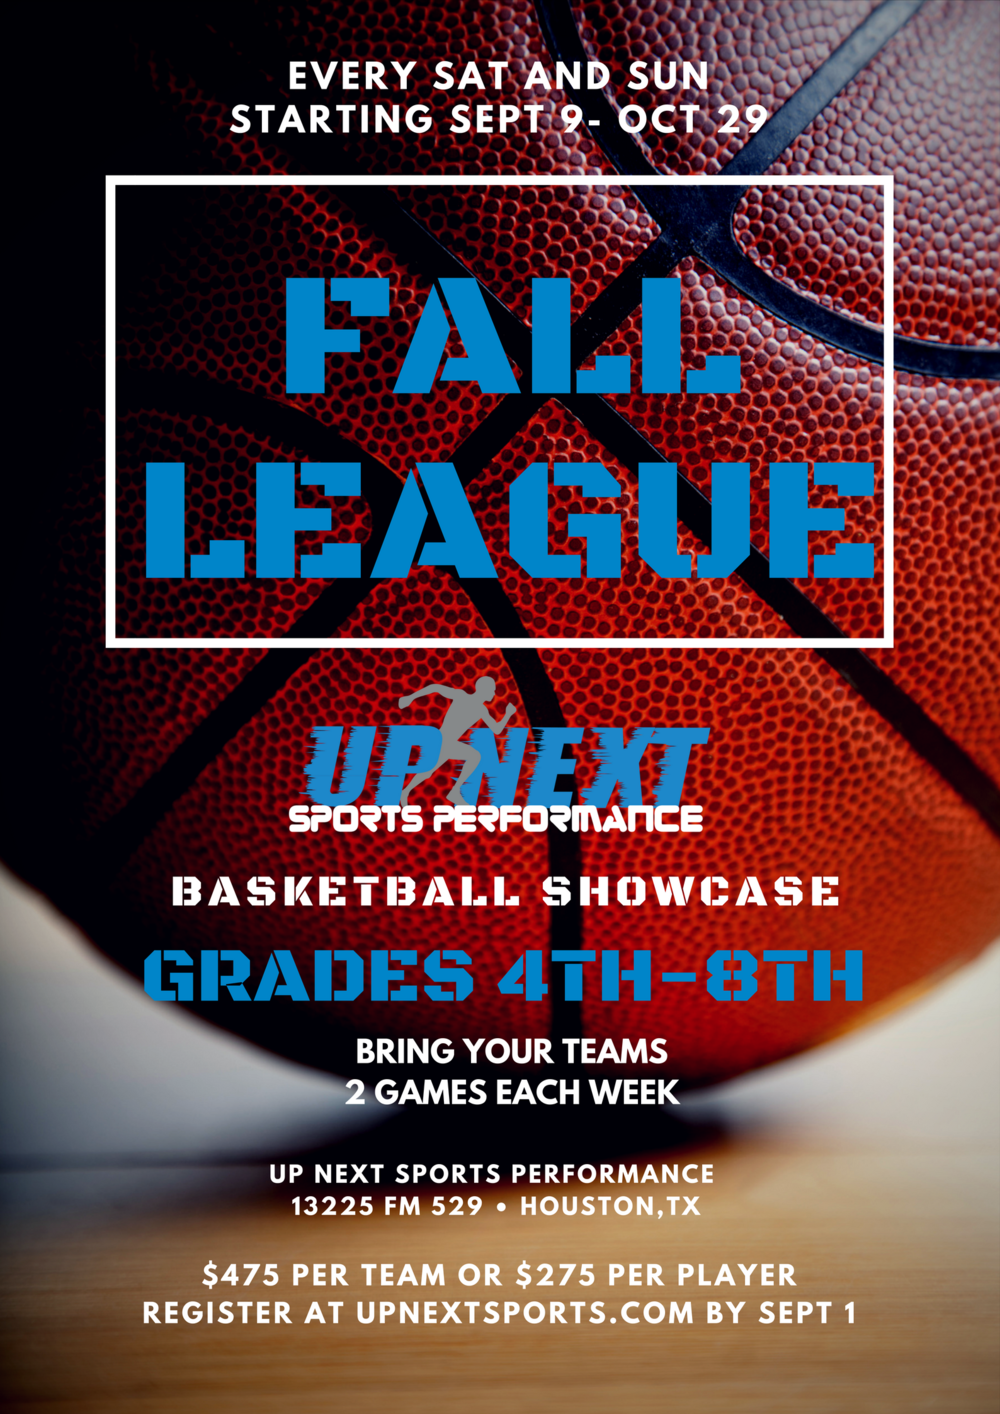 Welcome to the 1st UpNext Fall League 2017 We will be offering two games a weekend for the next eight weeks beginning 9/16/2017. The divisions are broken up by grade level only with 4-5th together, 6th alone and 7-8th together. We will be playing 16mn halves with 2 minute half times. Overtime games will consist of 2 minutes, double overtime 1 minute. The cost for 16 games is only $475. This breaks down to only $30 per game. Refs will be provided, and teams are responsible for books and clock work. Schedules will be posted on Tourney Machine, an easy to use app that once registered we will send you the link for your convenience. All teams must provide proof of grade for each player. If it is proven that a team has cheated by entering an older player, they will be disqualified and NO REFUND given.